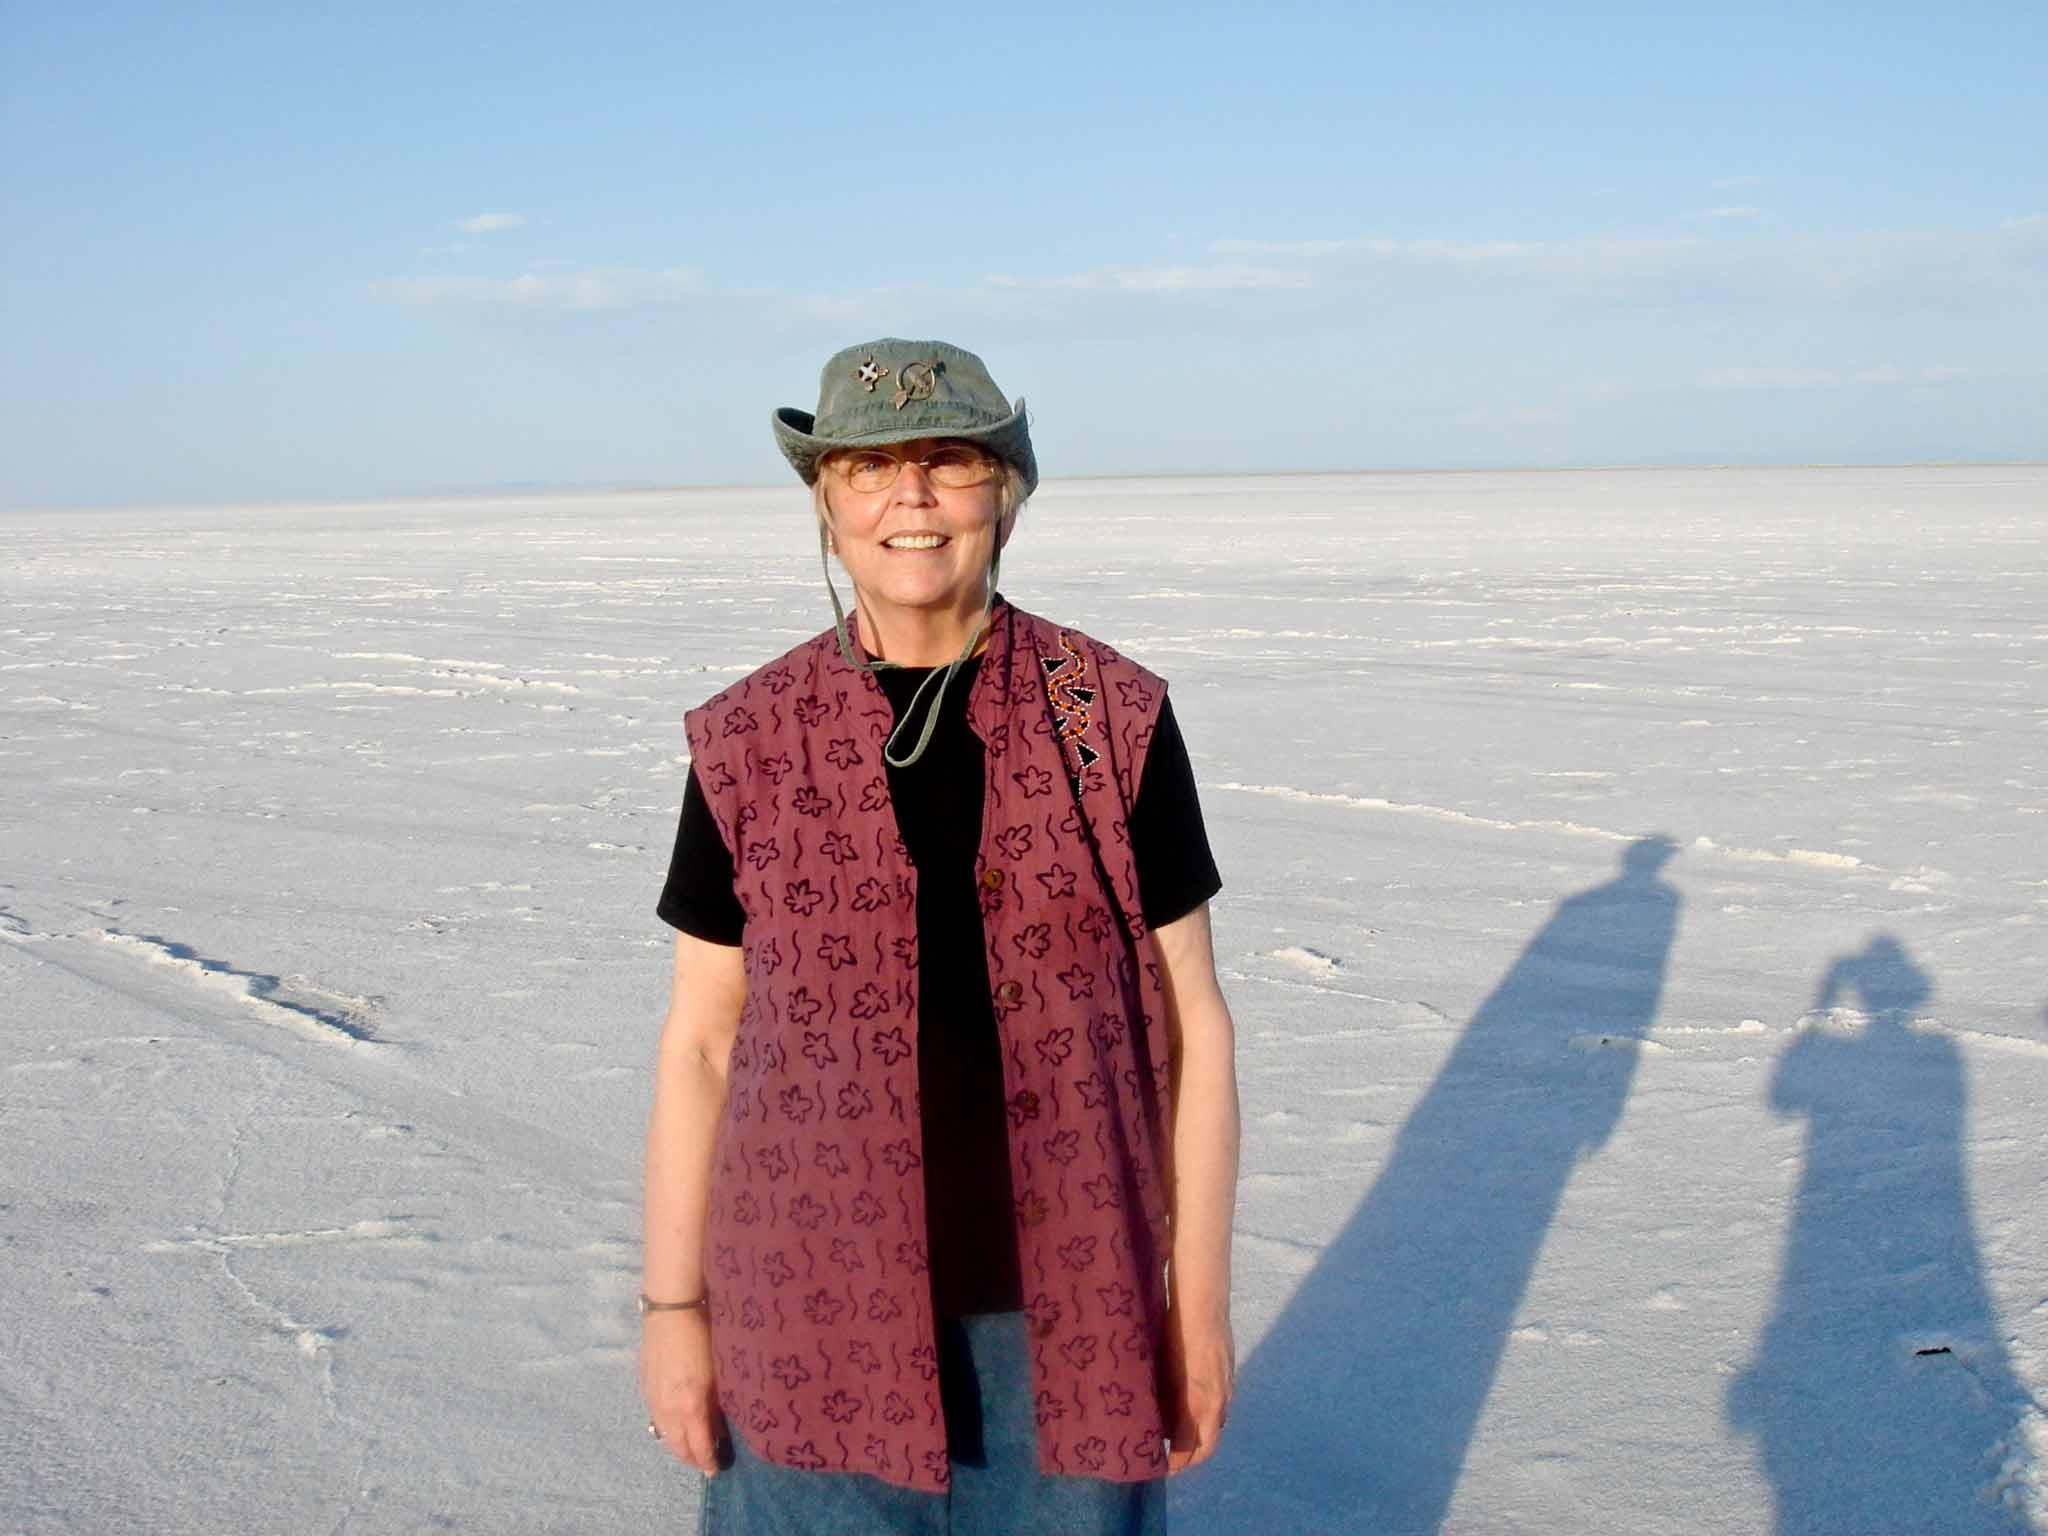 Nancy Holt stranding alone with the Salt Flats of Utah in the background.